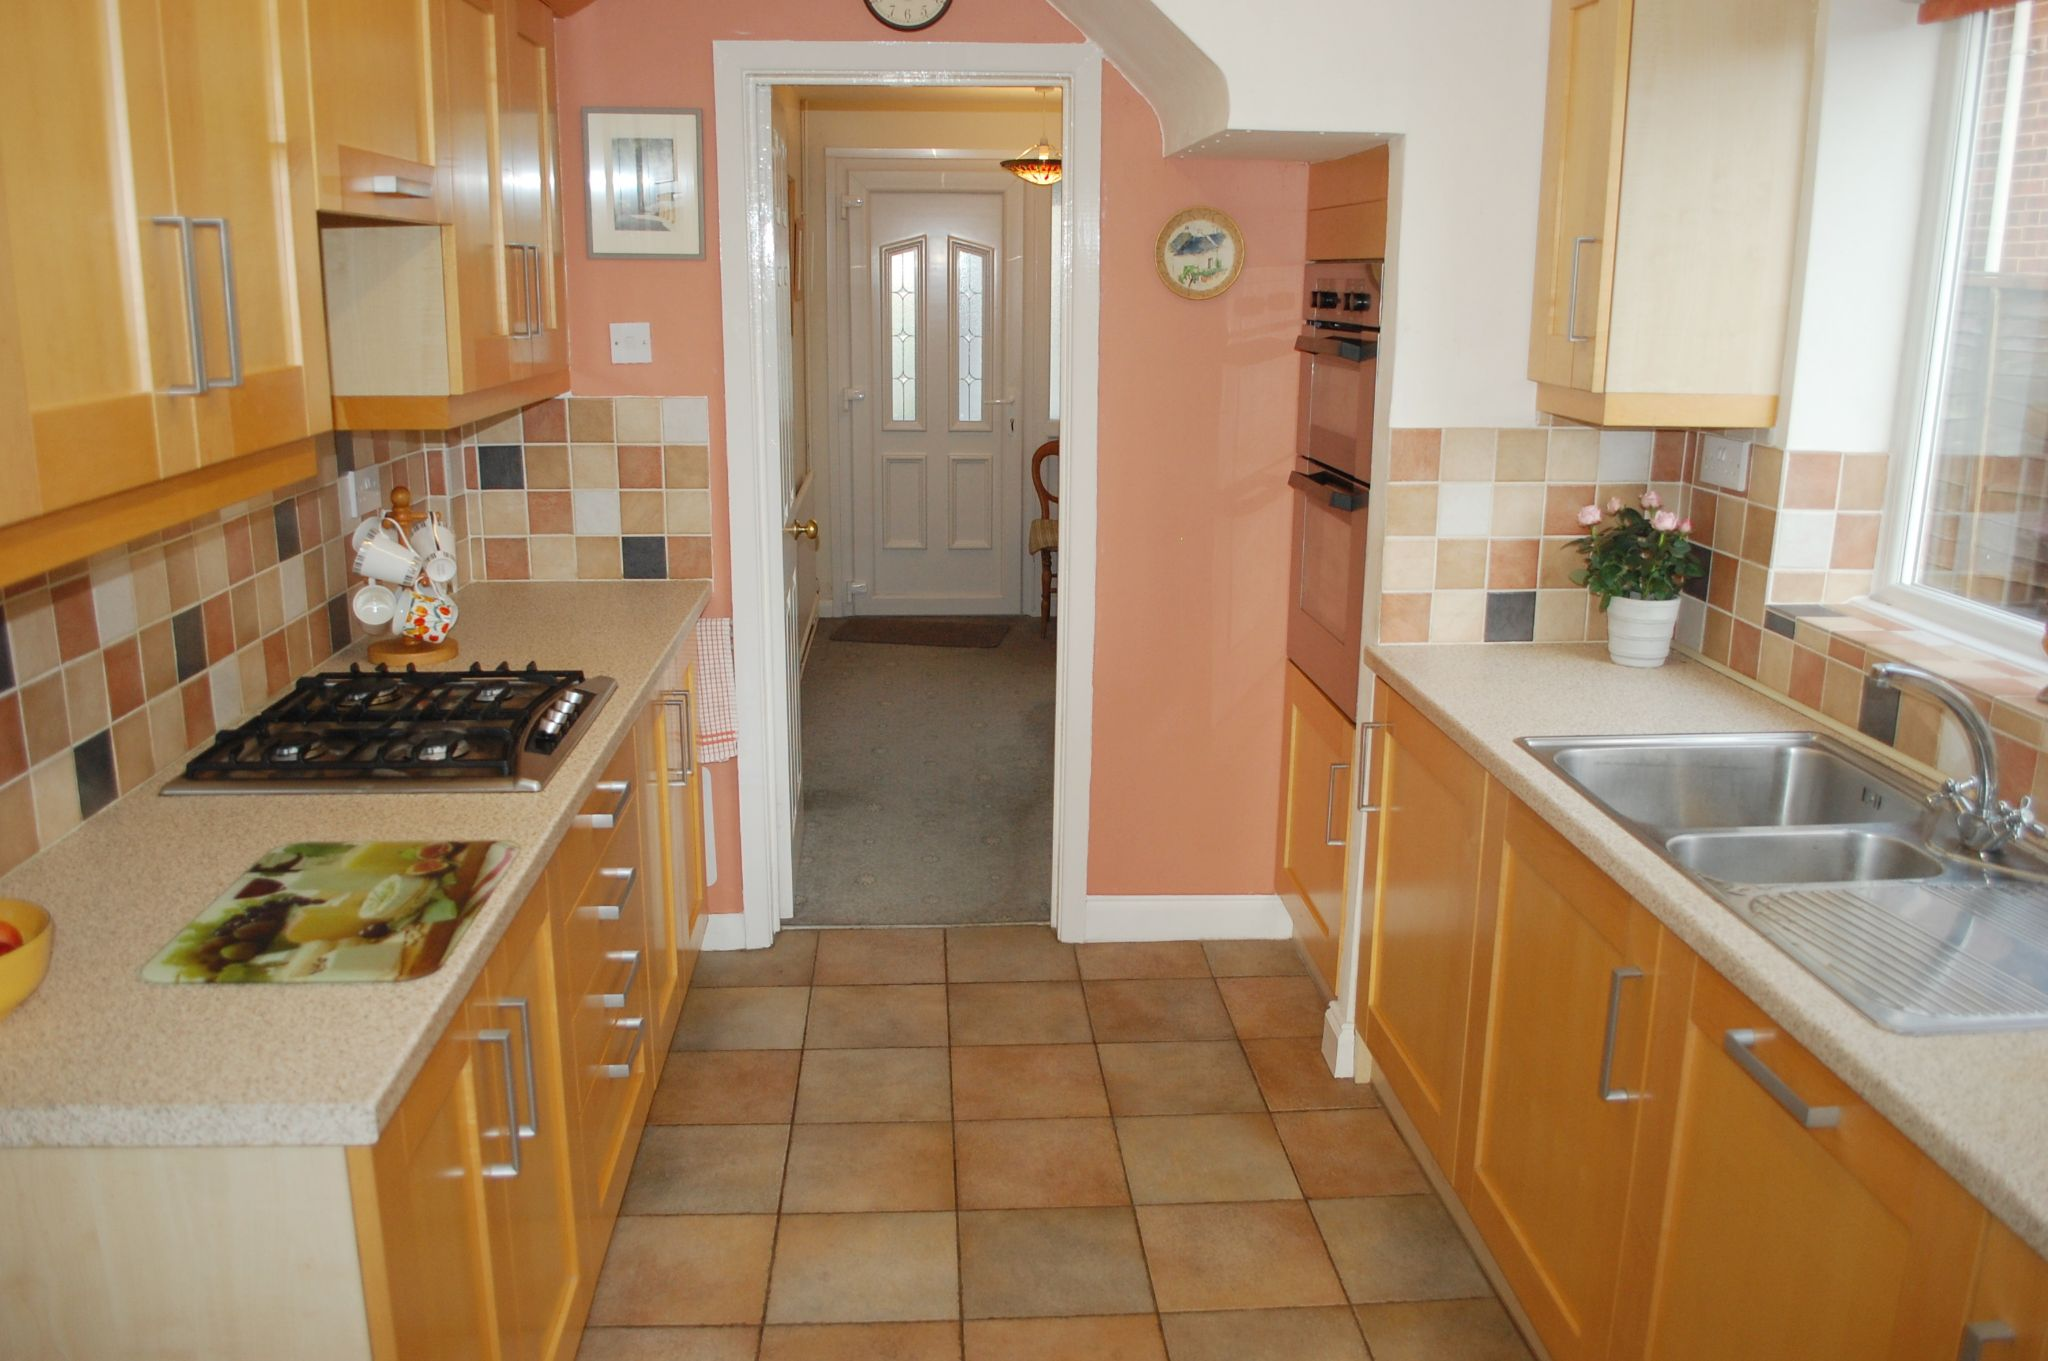 3 bedroom detached house SSTC Alcester - Photograph 9